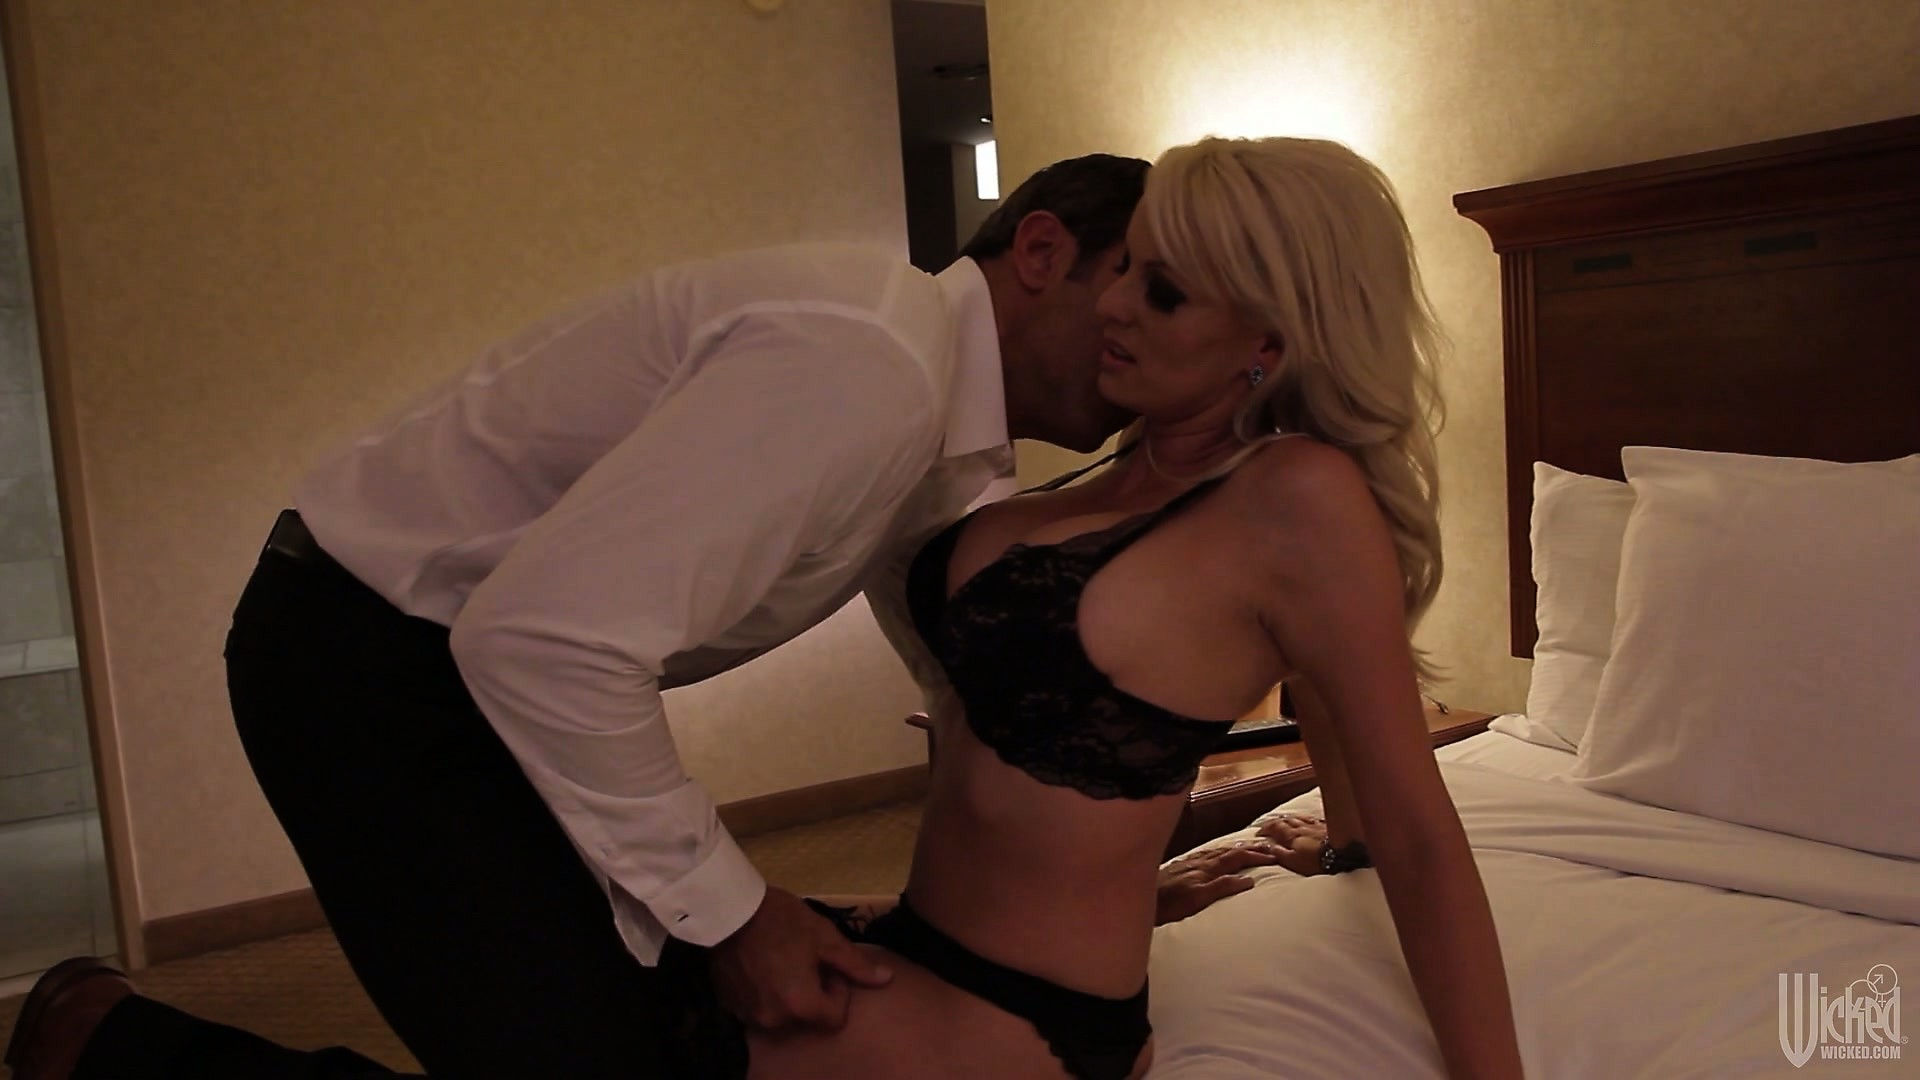 Porno Video of Blonde Seductress Gets Her Hands Tied Behind Her Back By Her Lover